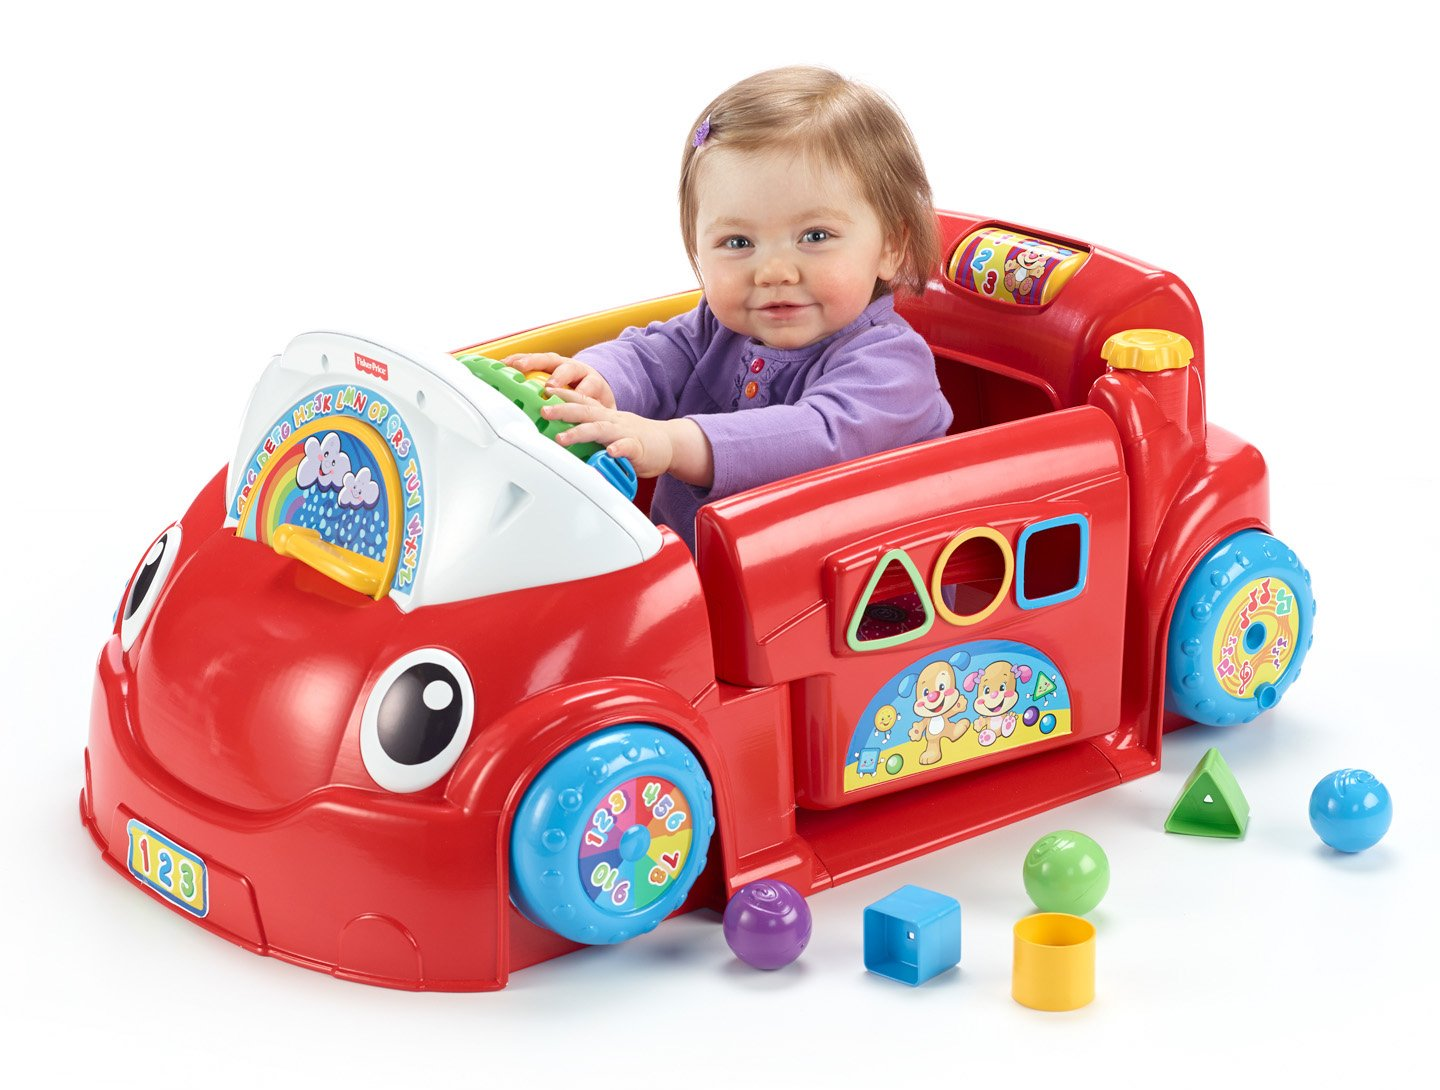 Toys For Toddlers One To Three Years : Holiday gift guide babies the naughty mommy